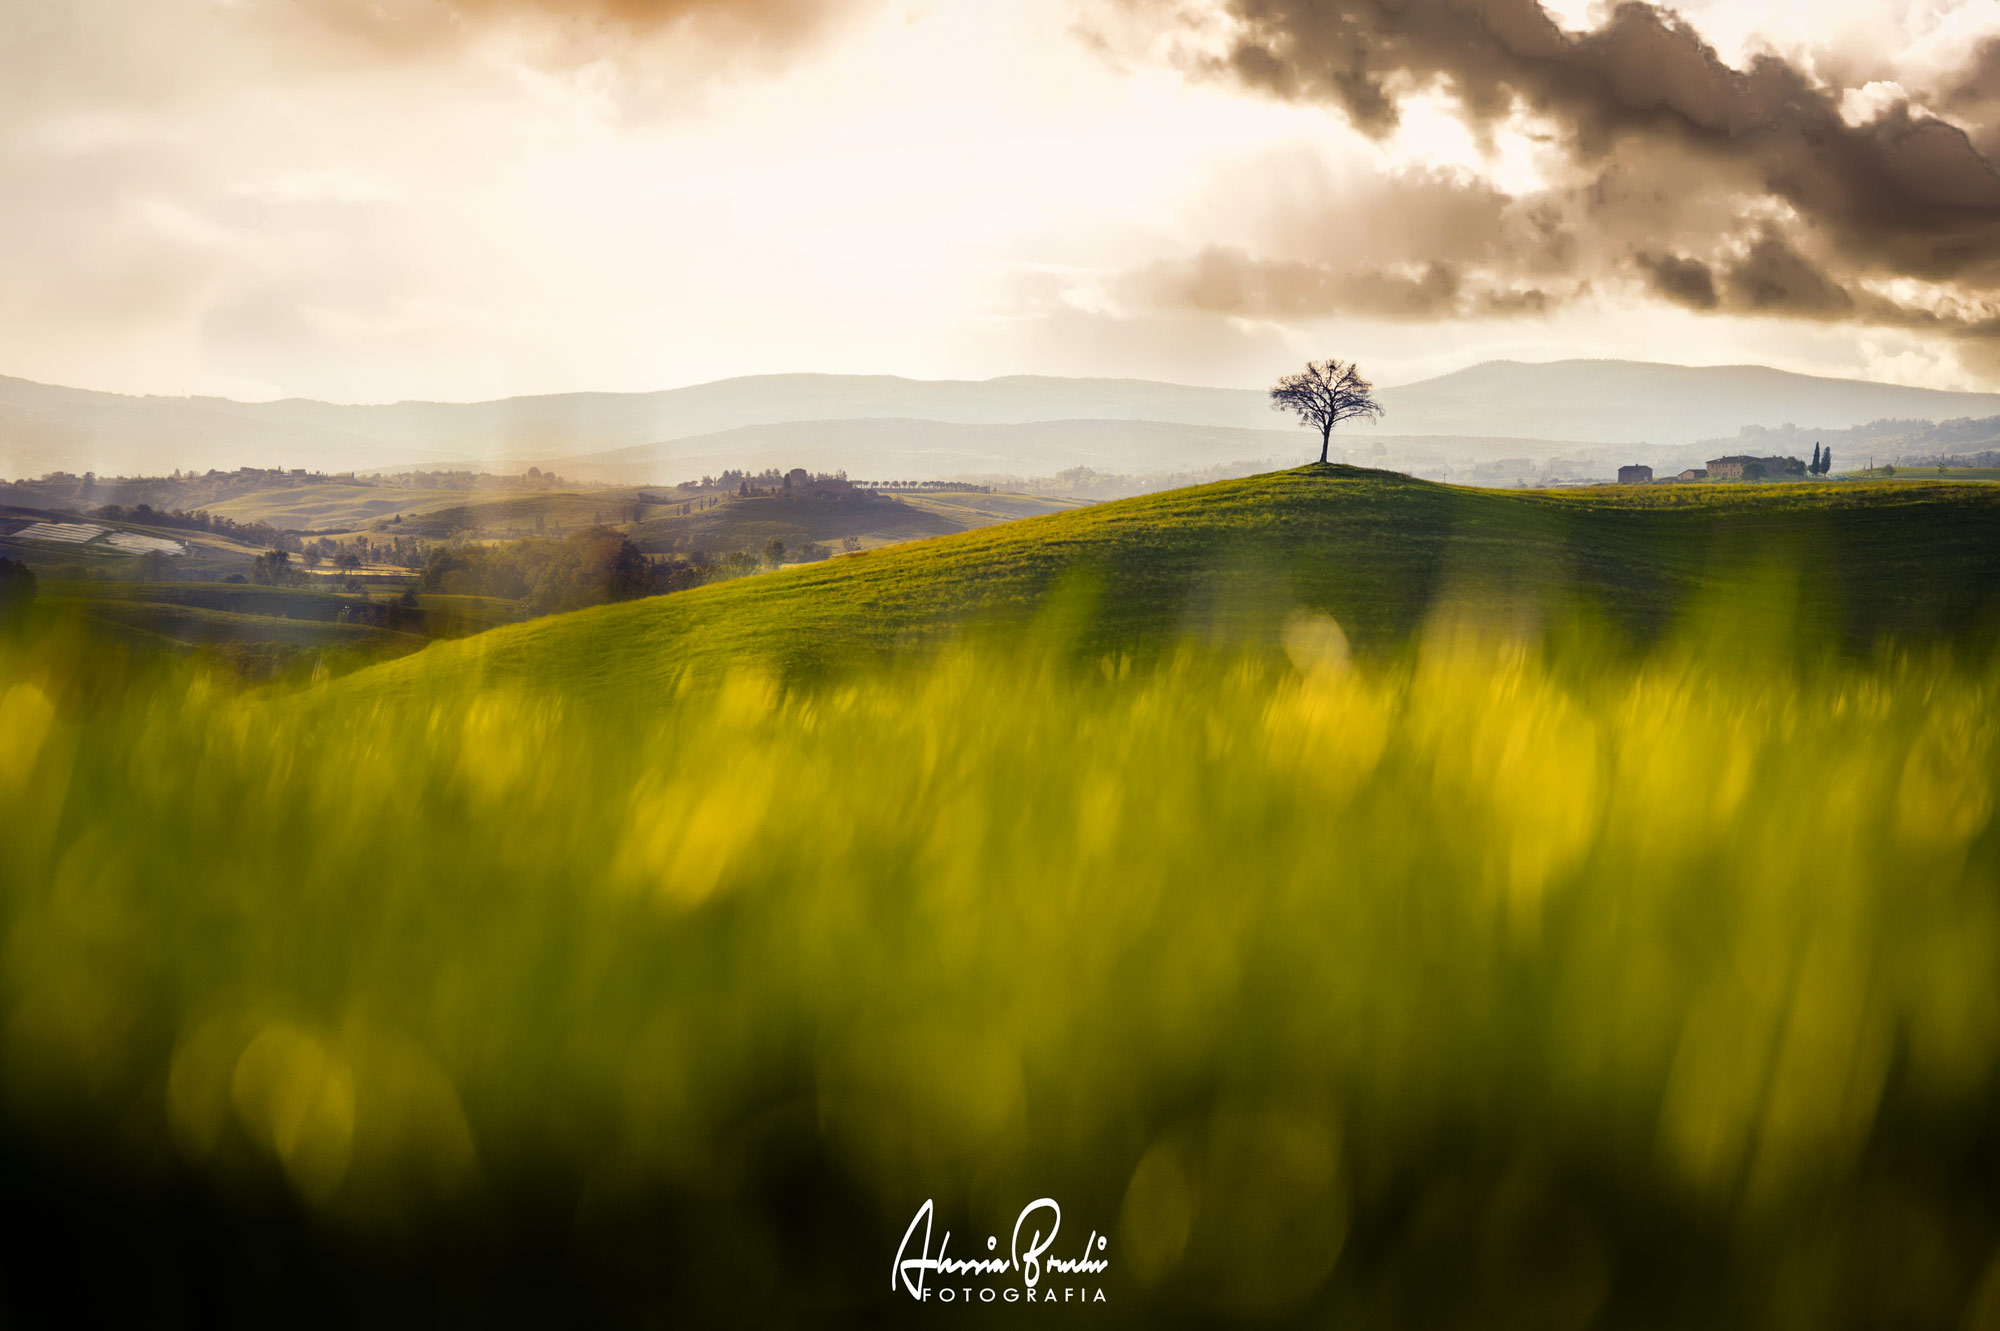 lanscapes photographer in tuscany